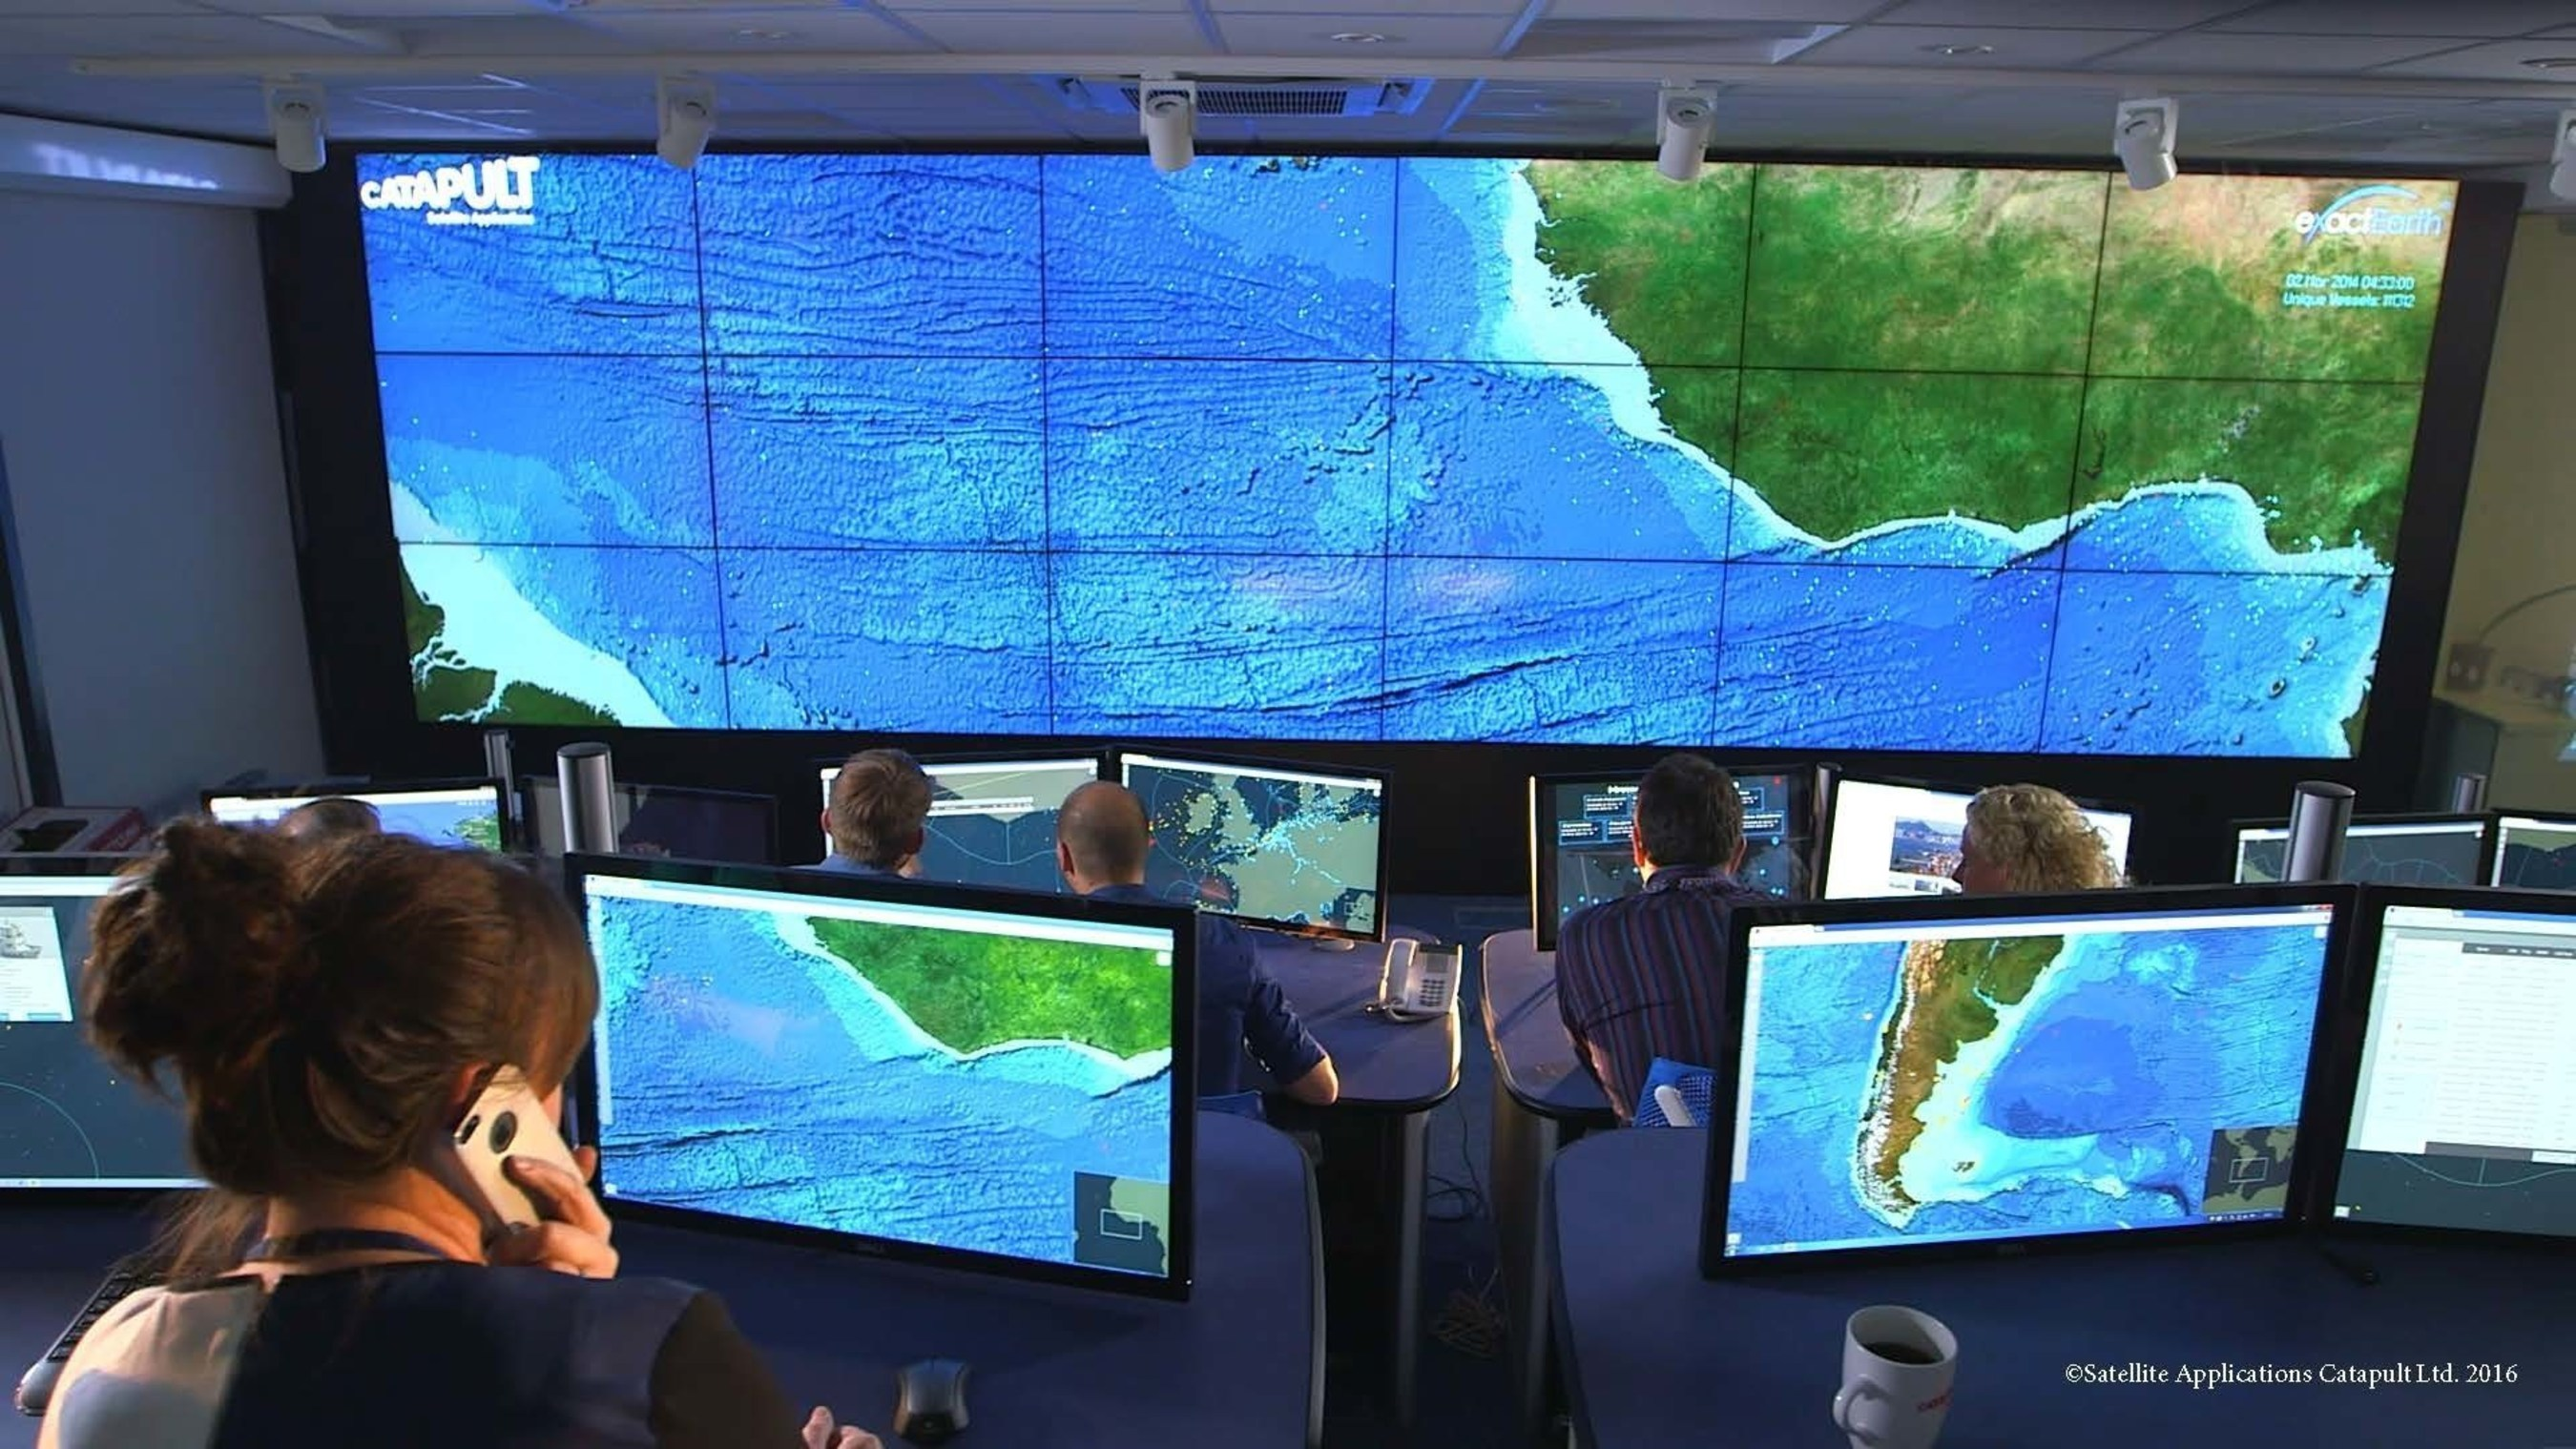 Project Eyes on the Seas tracks vessels around the globe. Credit: (C) Satellite Applications Catapult Ltd. 2016